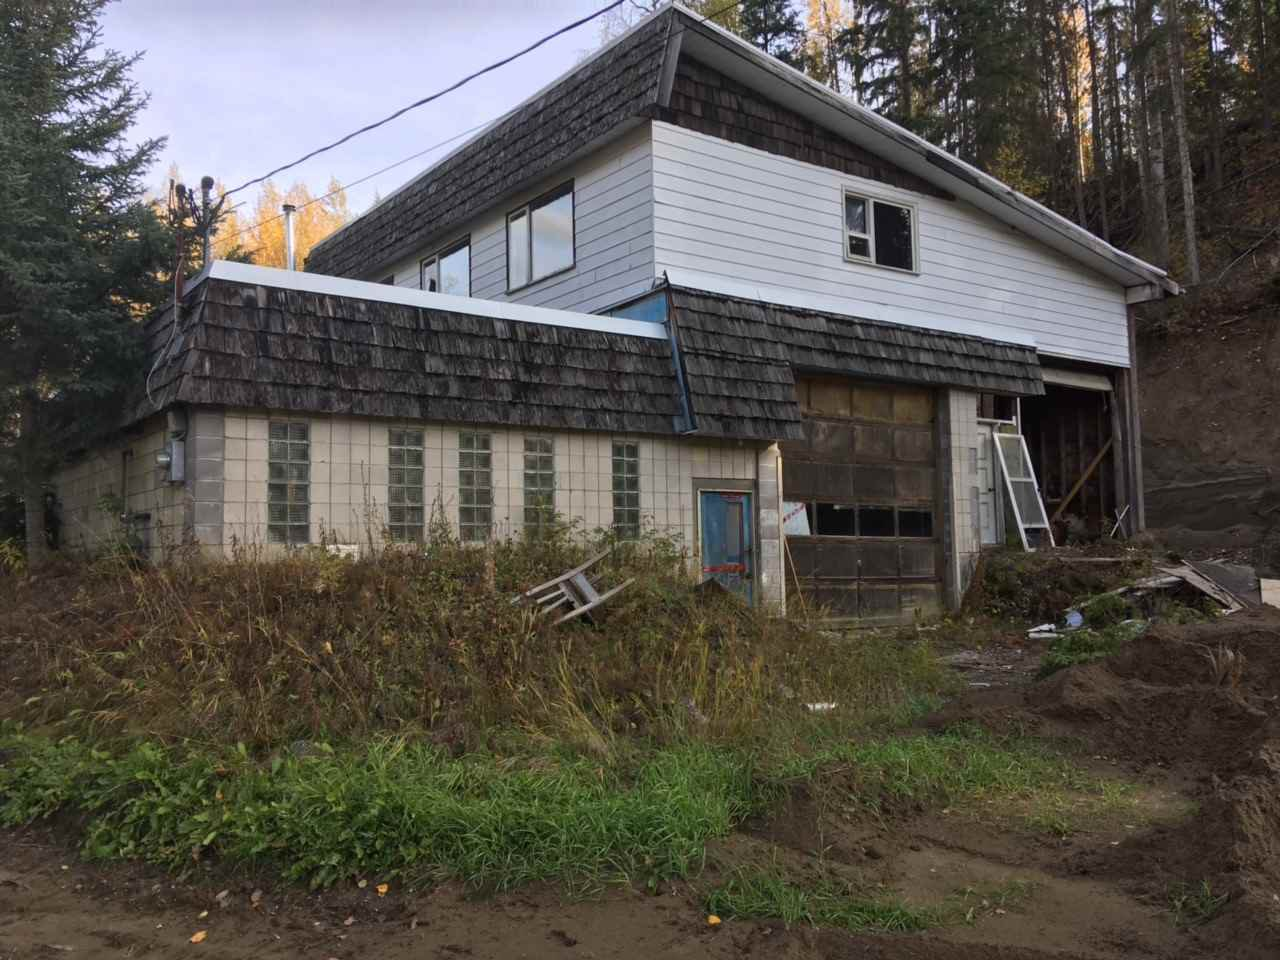 Main Photo: 828 HORNBY Road in Prince George: Old Summit Lake Road House for sale (PG City North (Zone 73))  : MLS®# R2410861